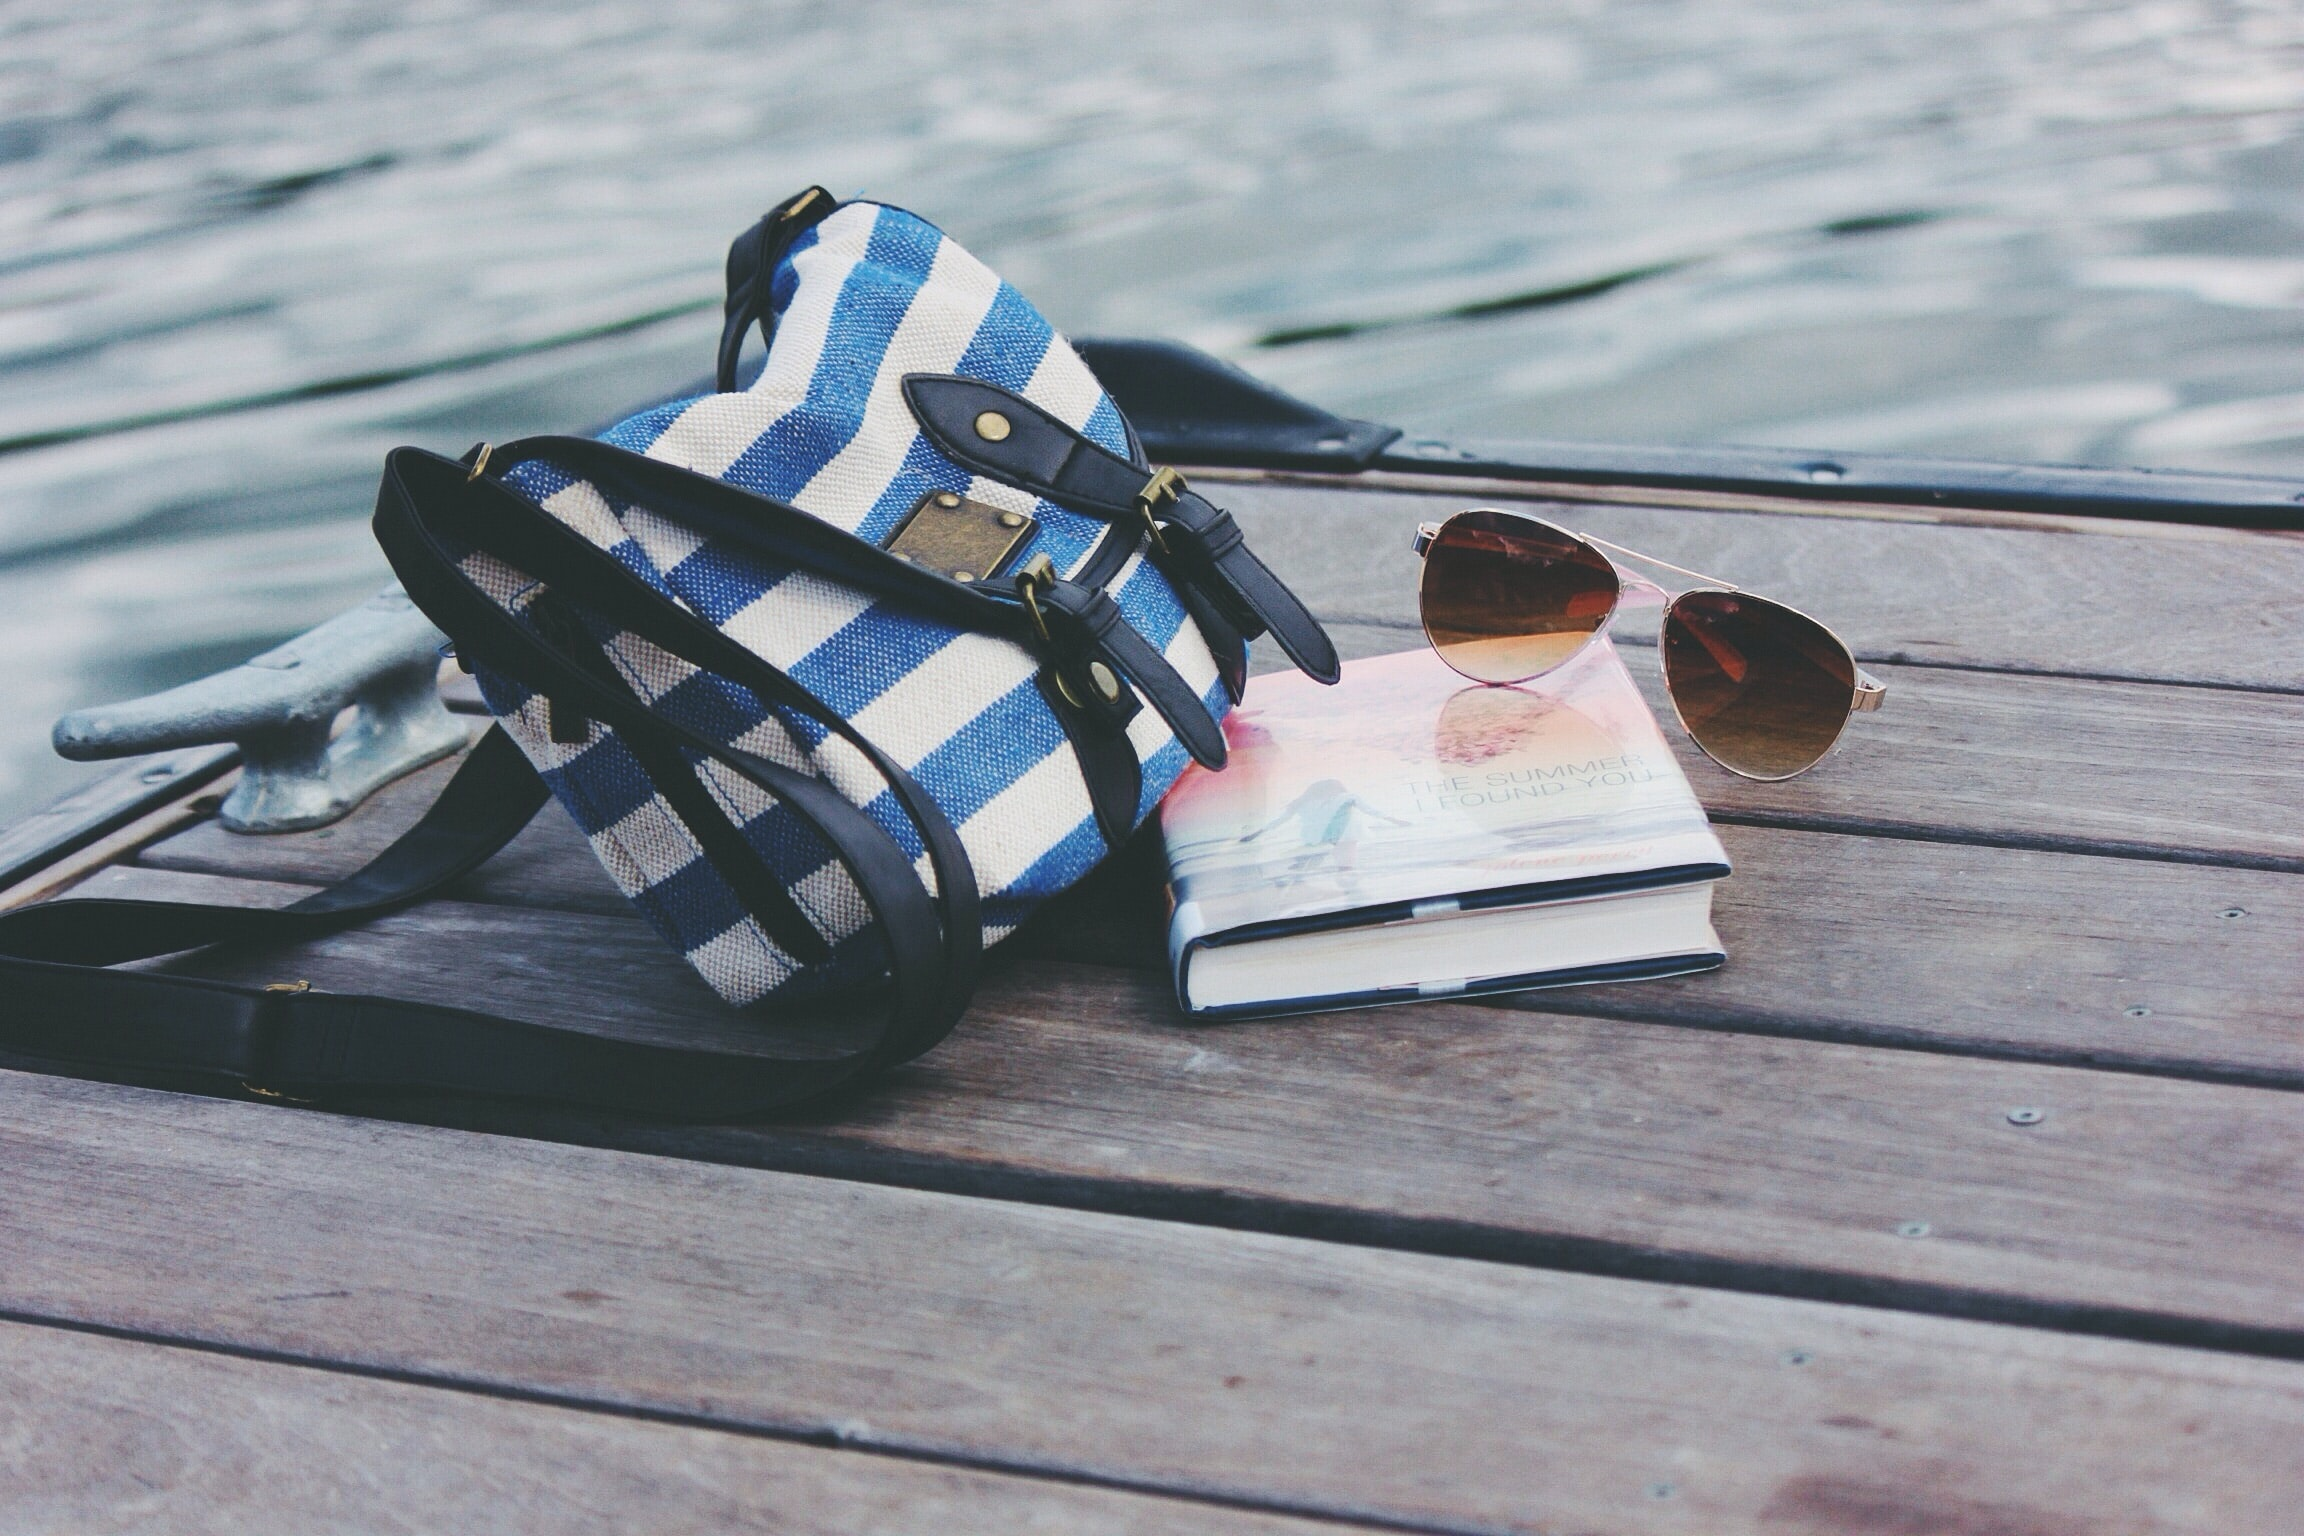 A white-and-blue bag, a pair of sunglasses and a book on a wooden surface